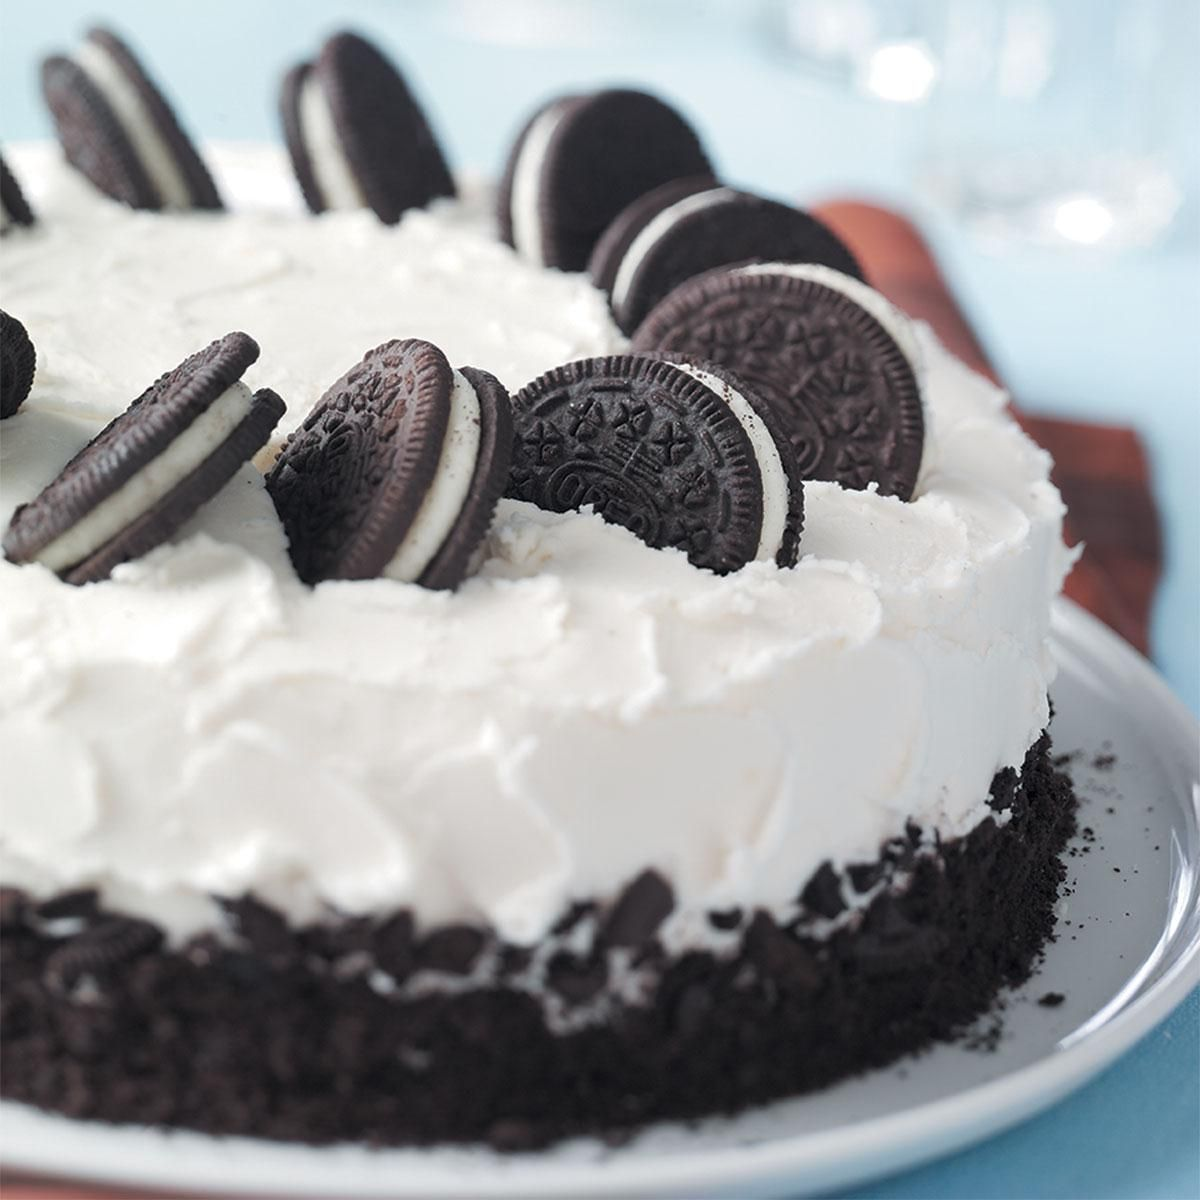 Cookies-and-Cream Cake #cookiesandcreamcake